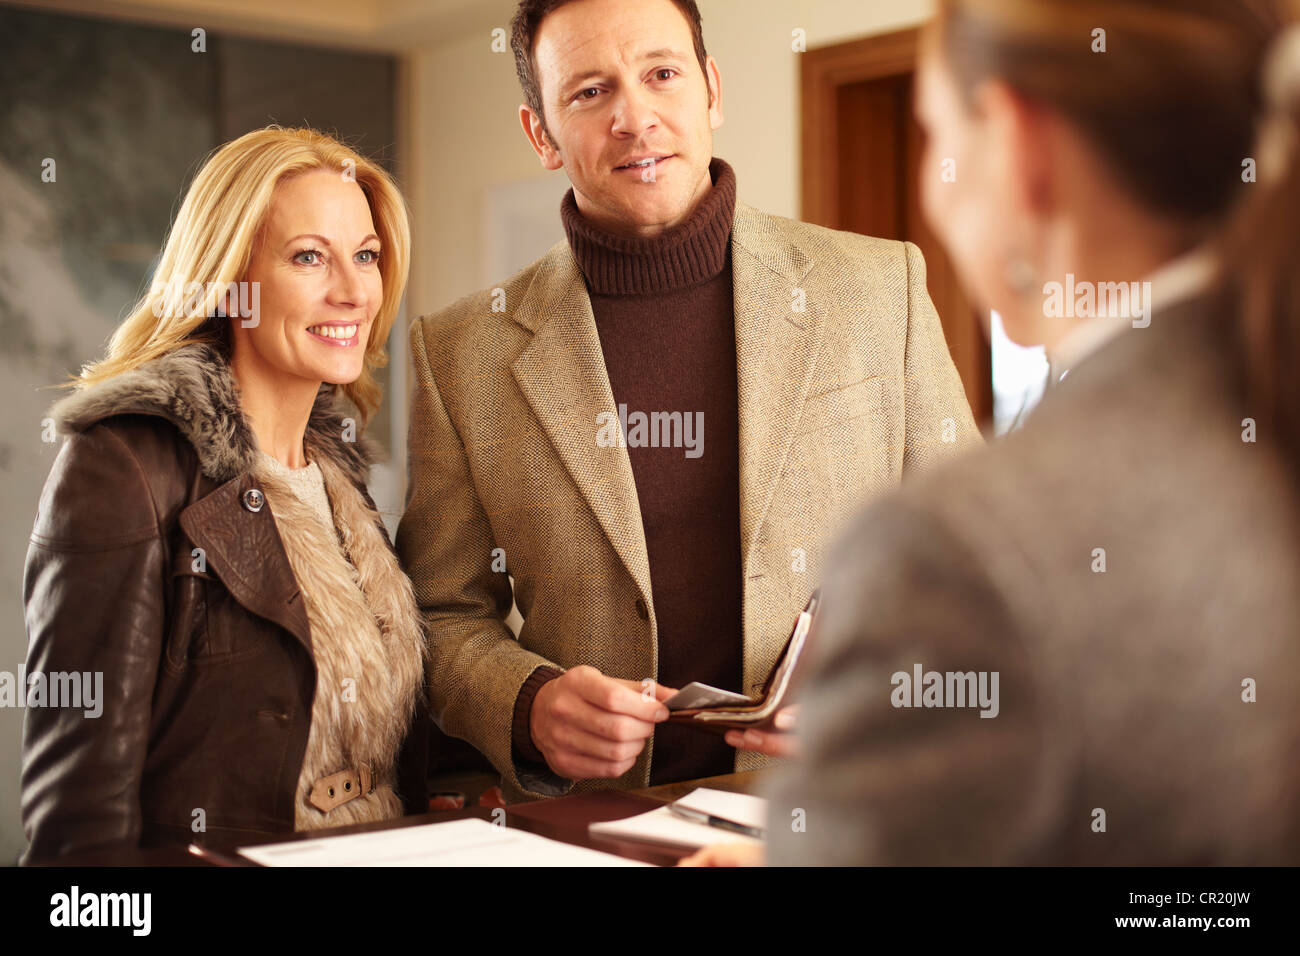 Couple checking in to hotel - Stock Image